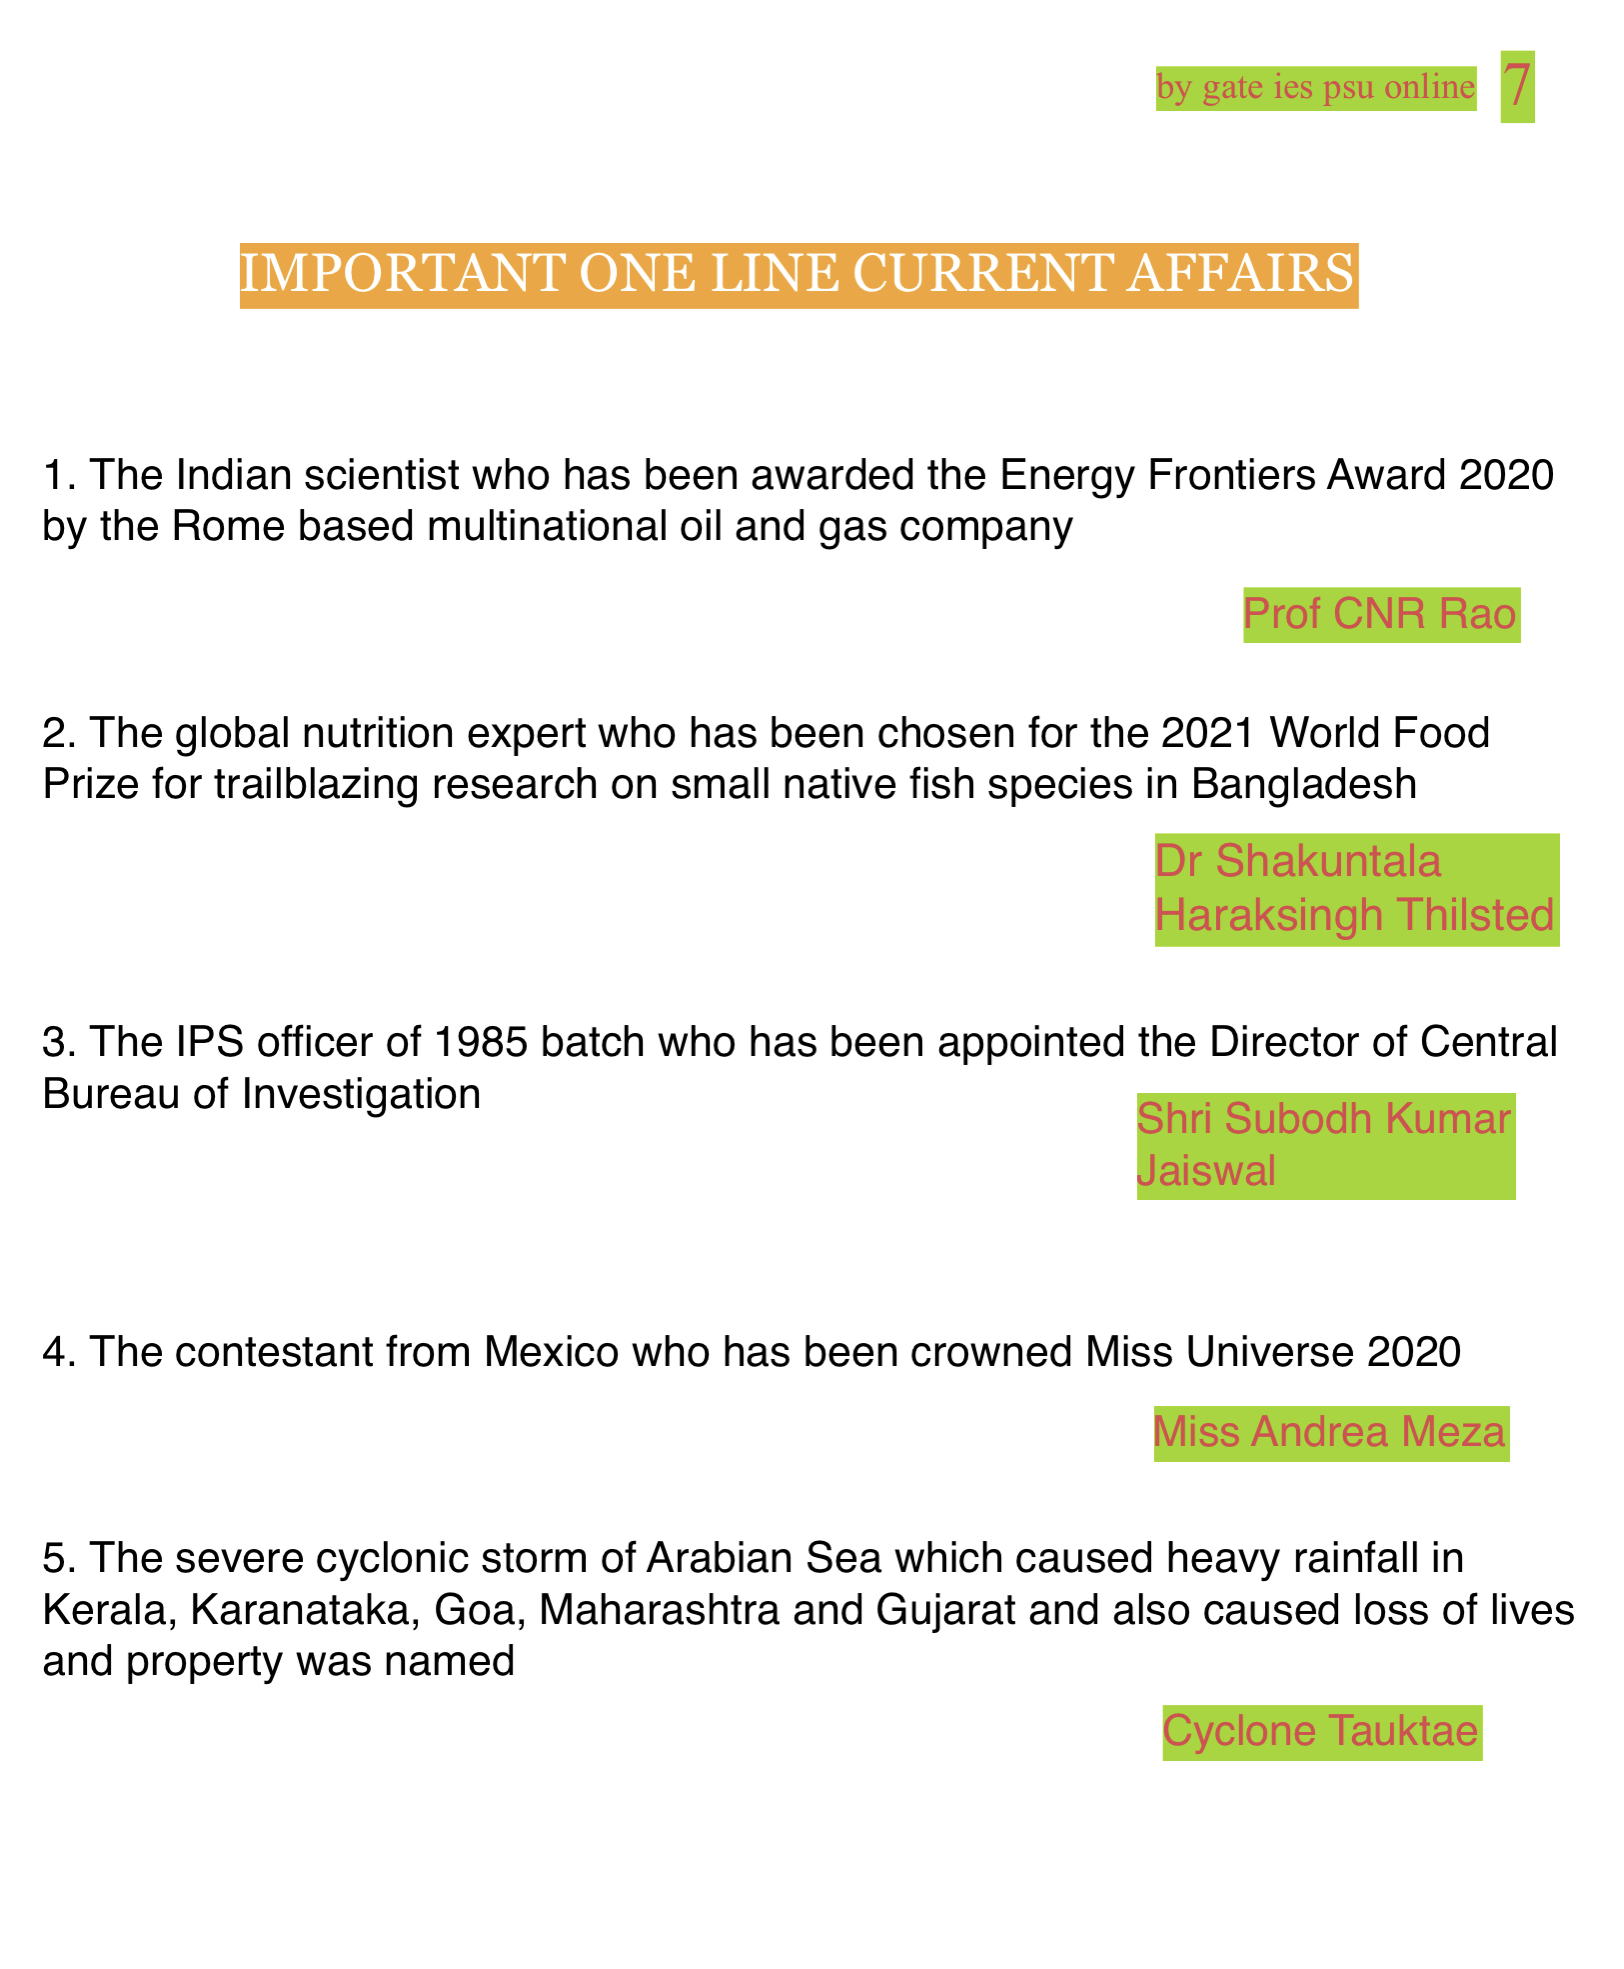 IES IRMS CURRENT AFFAIRS